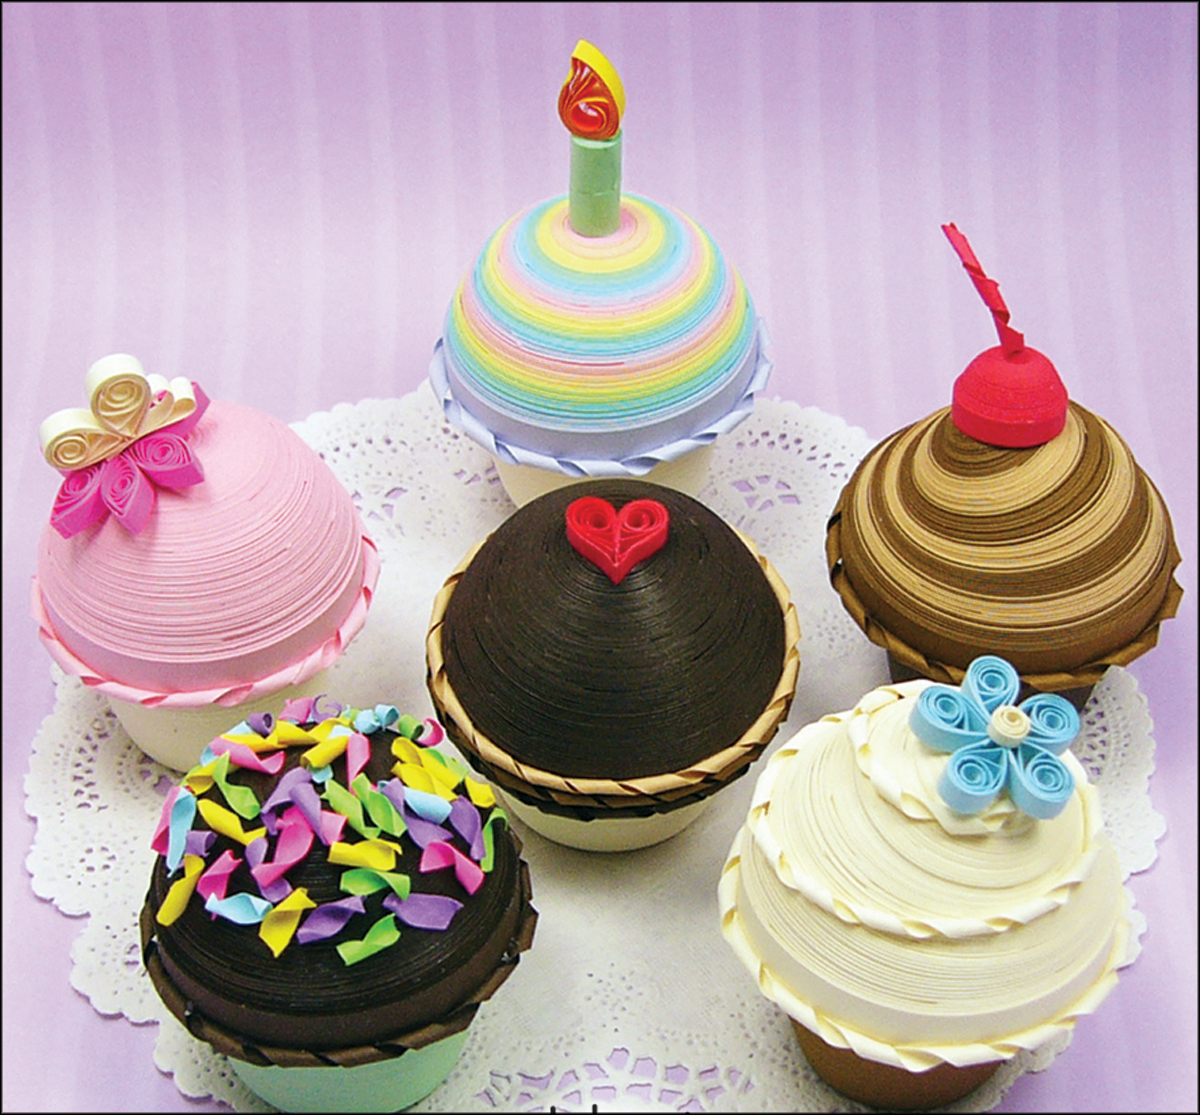 Quilled Creations Quilling Kit, Cupcake Treasure Boxes